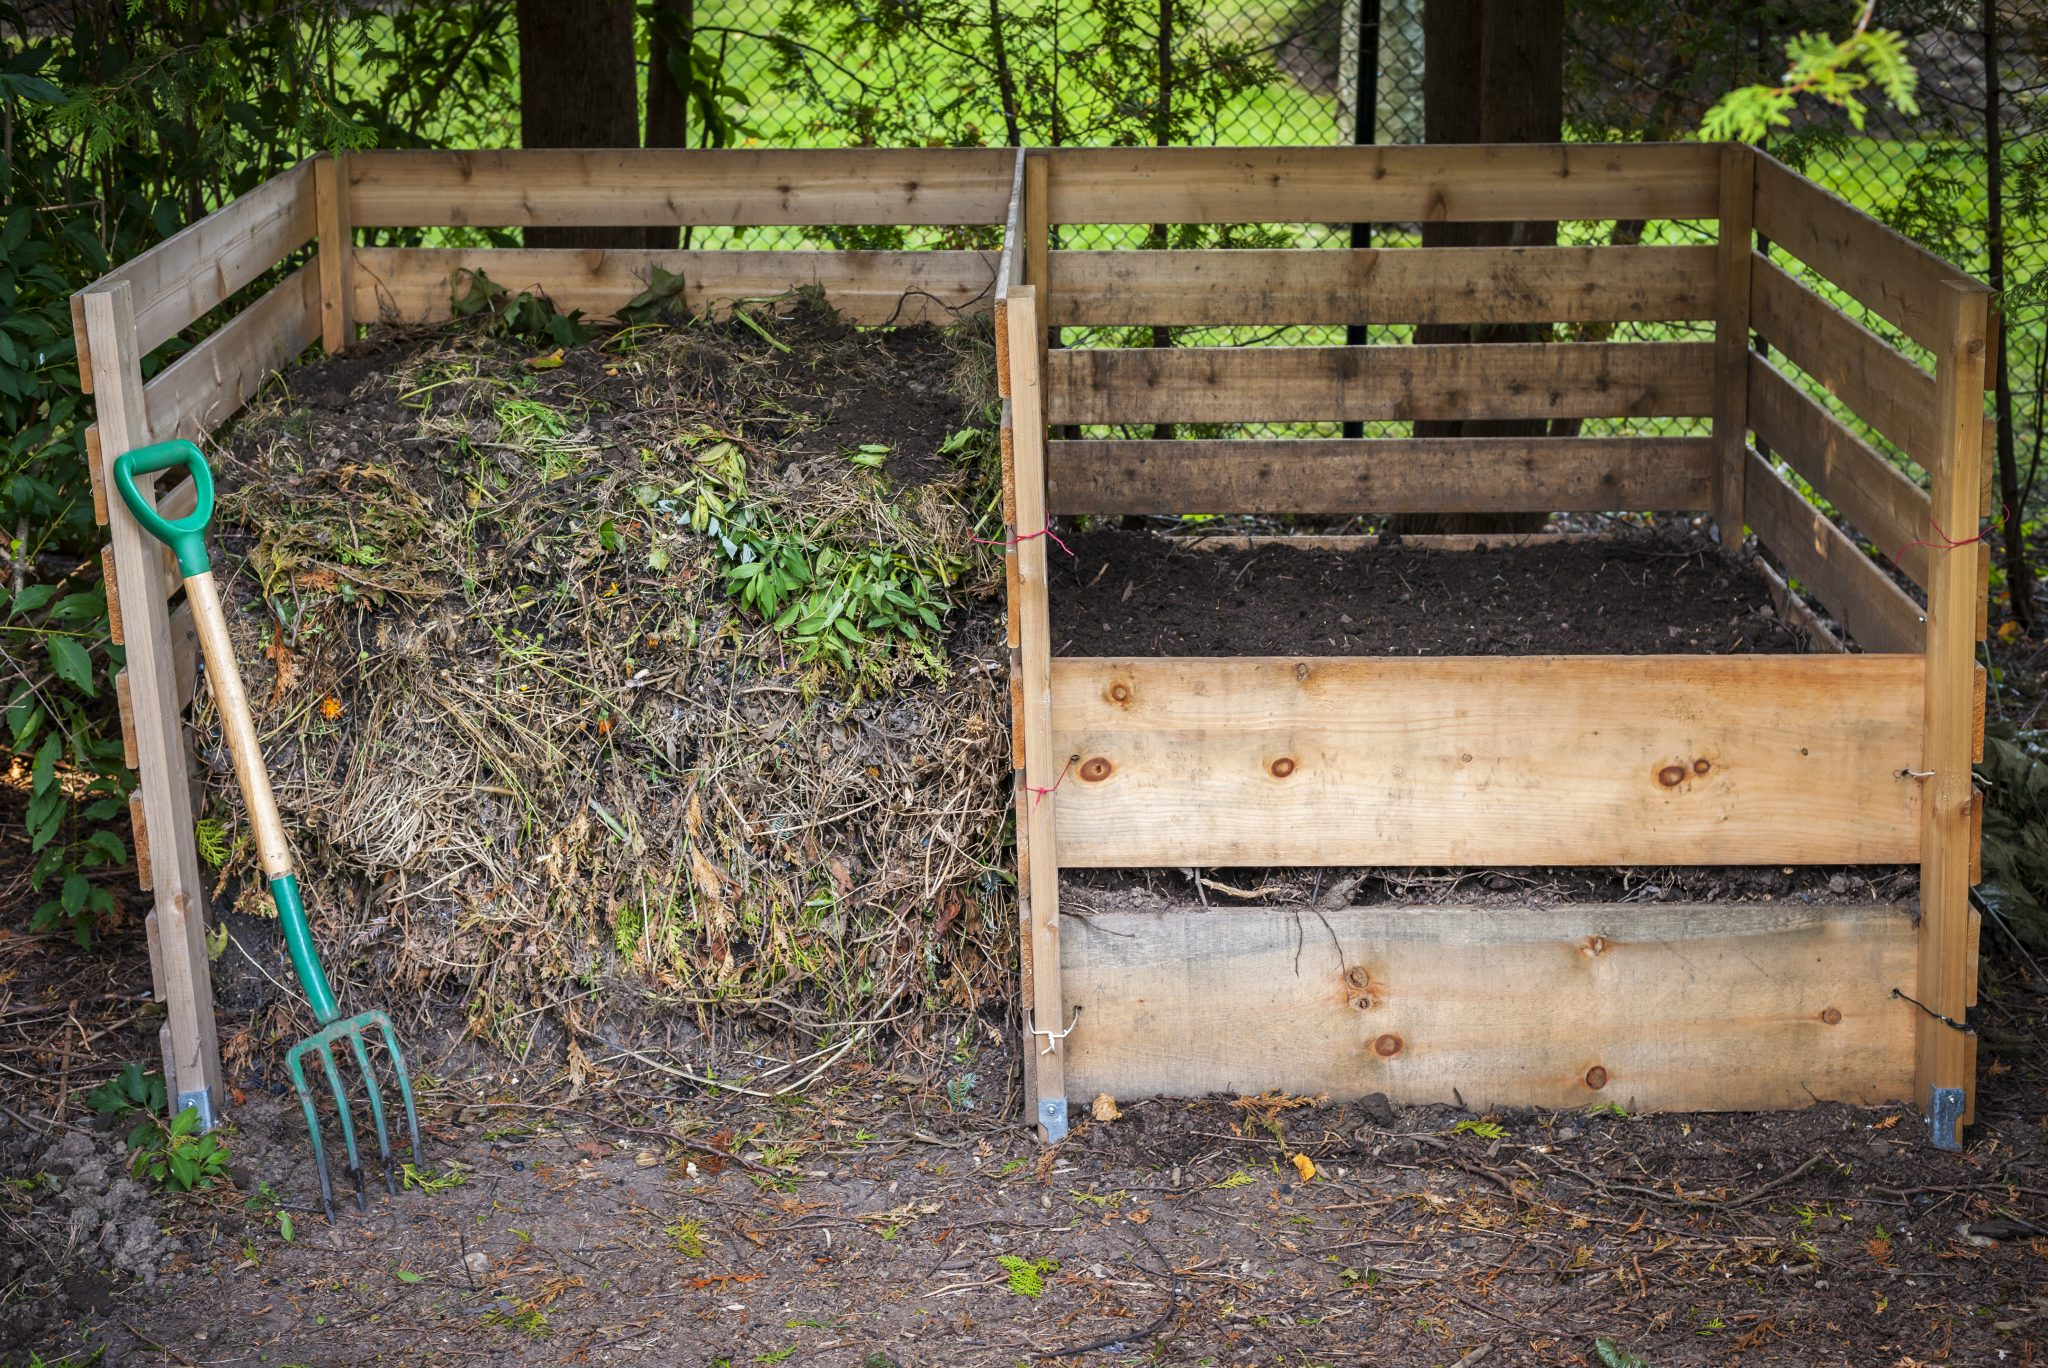 Backyard composting bins